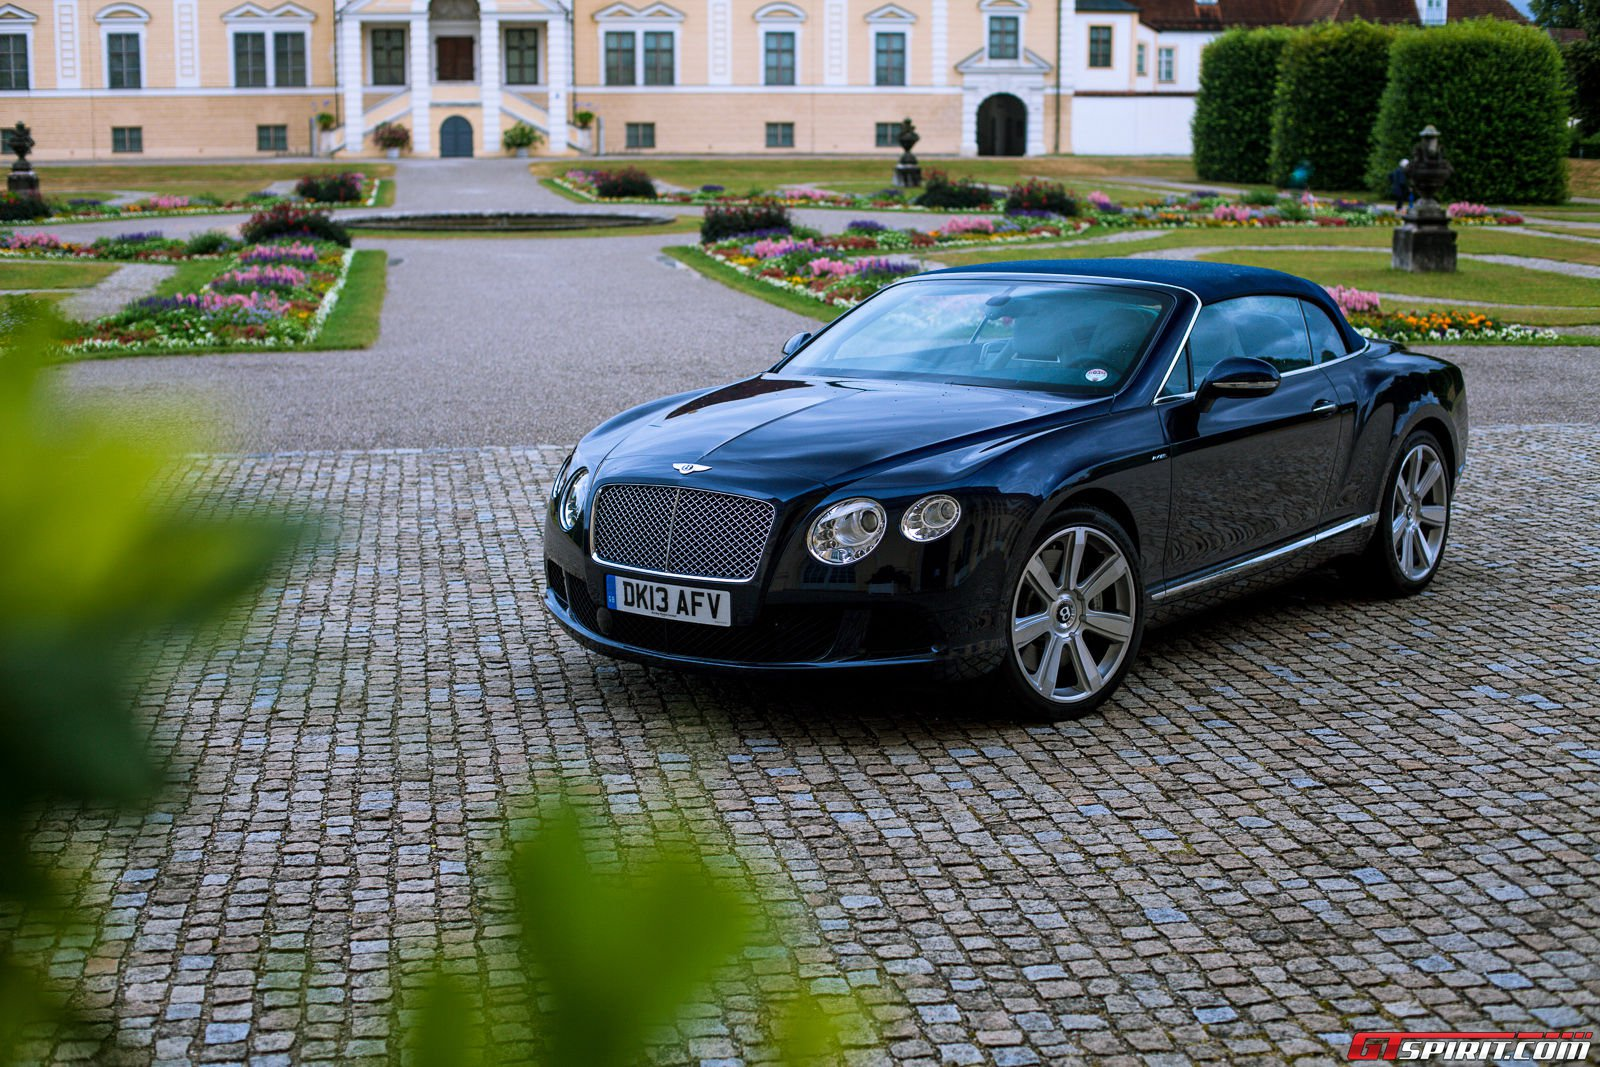 Road test 2013 bentley continental gtc w12 review the bentley continental gtc w12 is one of the most expensive and luxurious convertibles vanachro Images